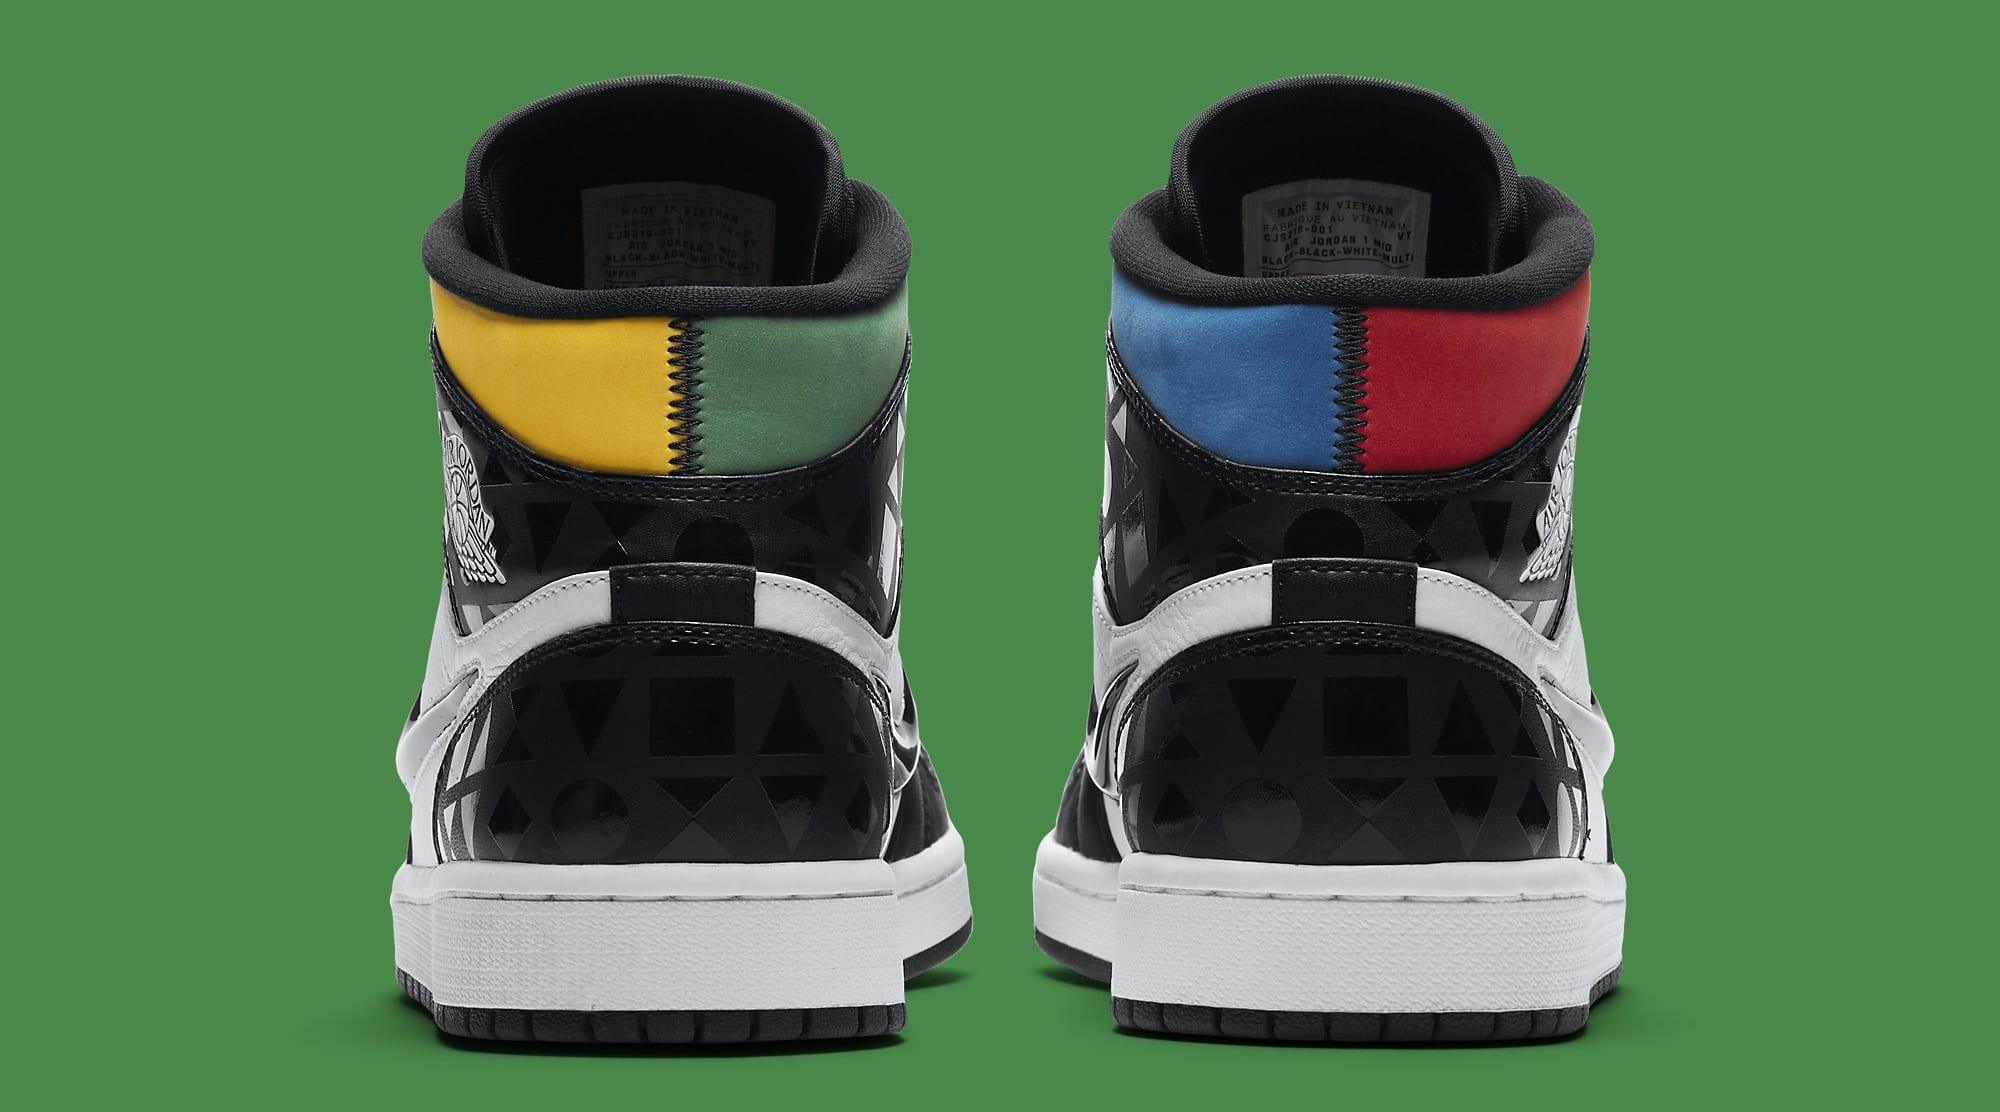 Air Jordan 1 Retro Mid 'Quai 54' CJ9219-001 Heel